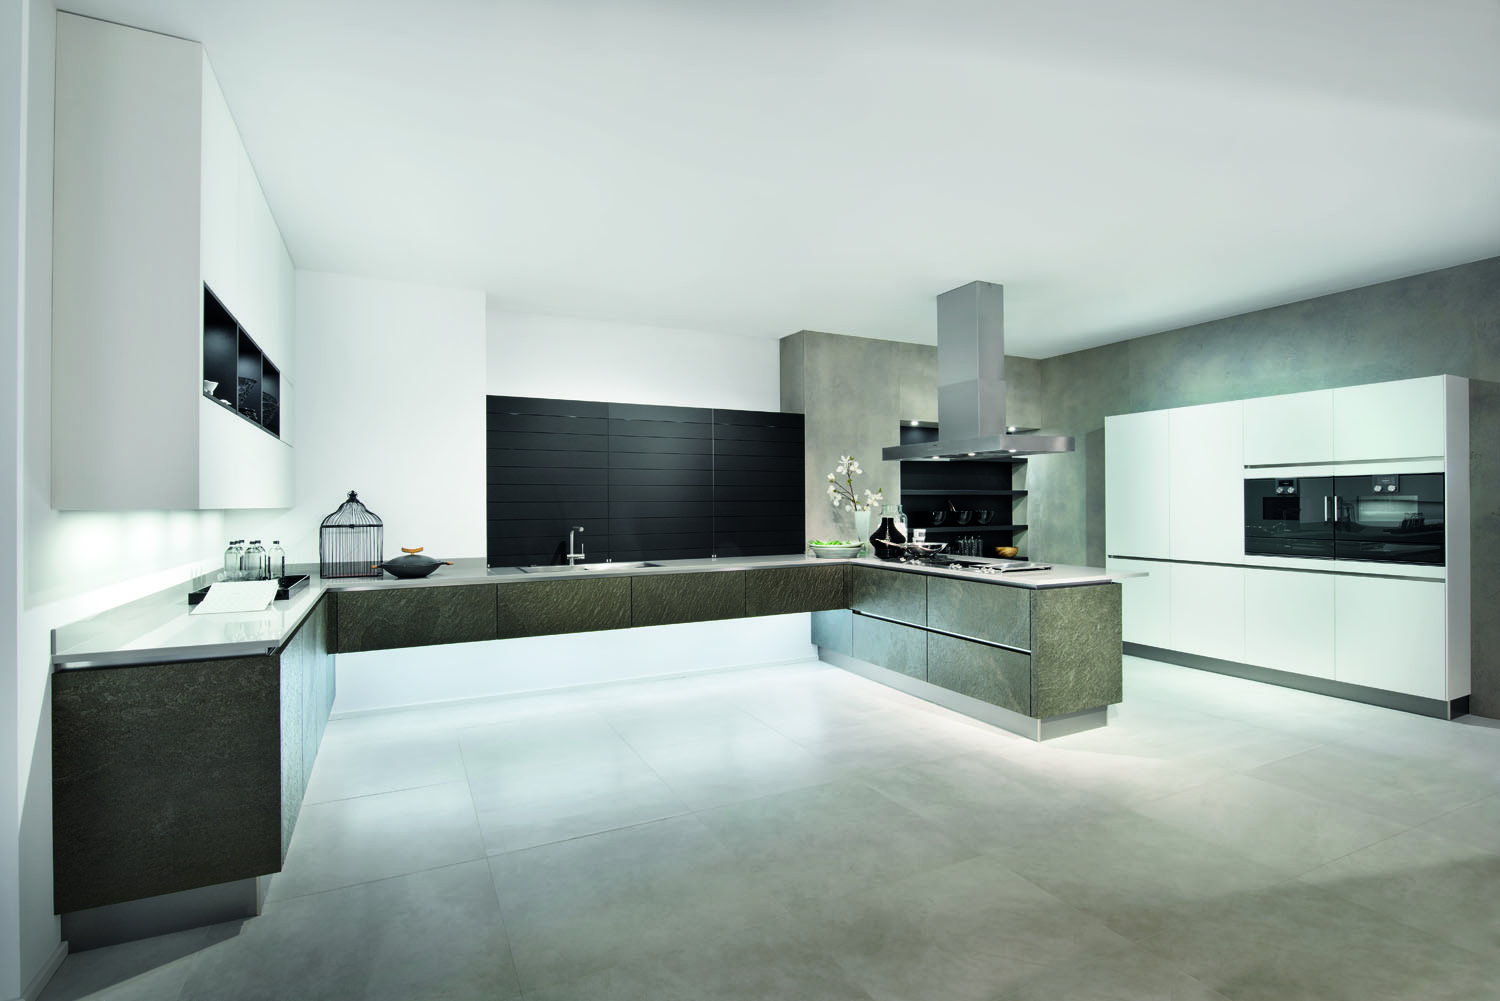 26-AV7030-black-star - Kitchen Elements